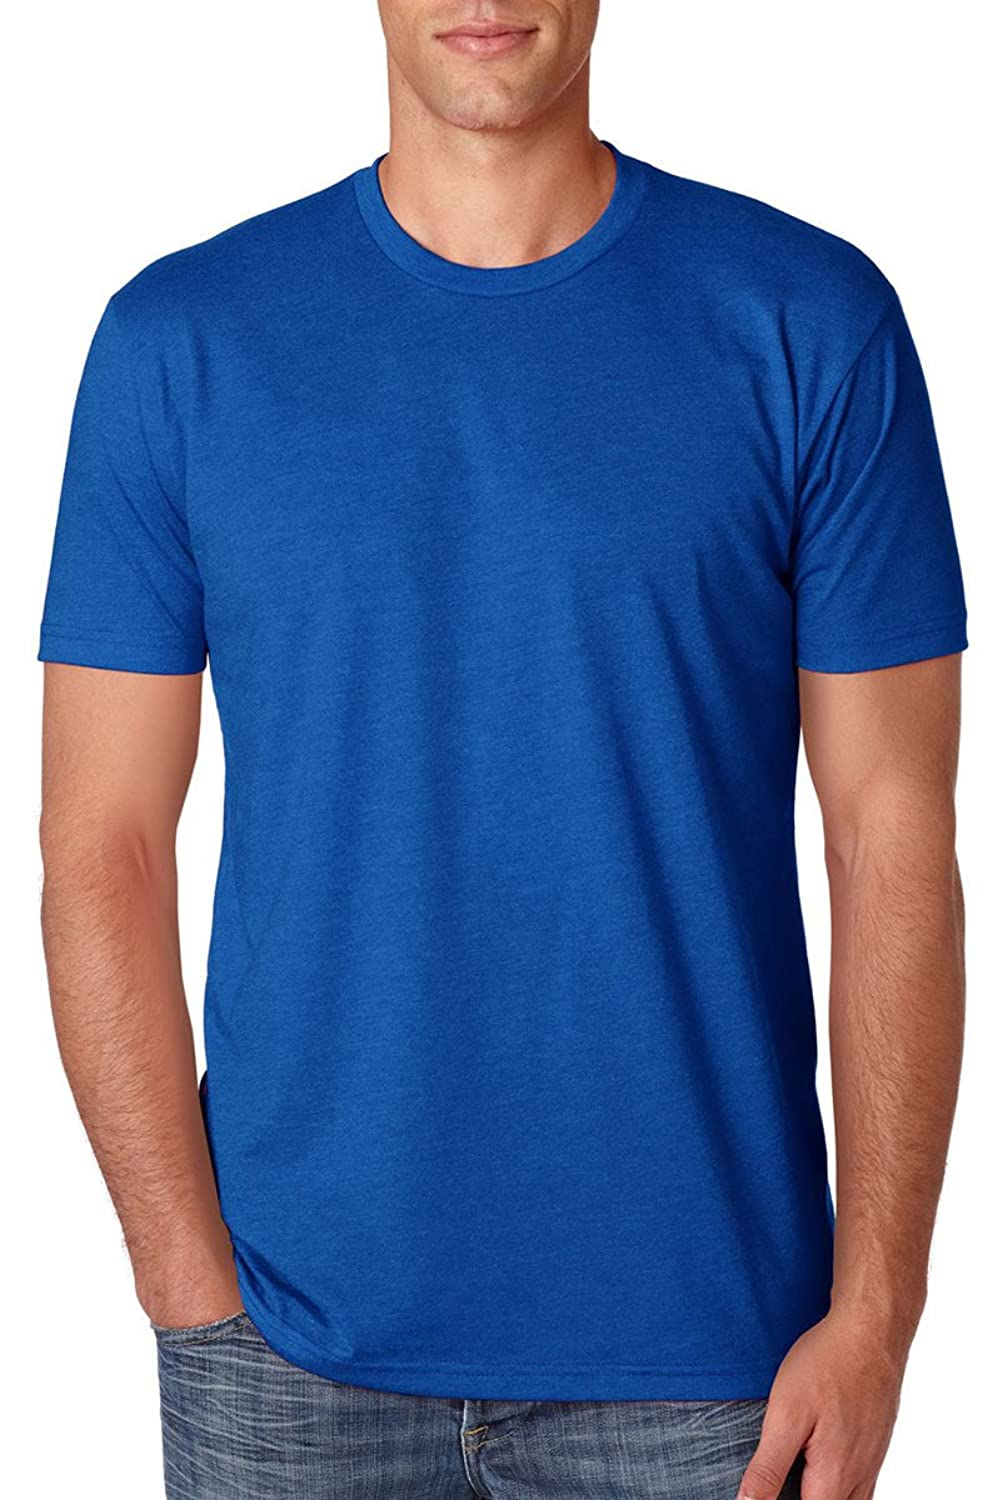 Next Level Men's CVC Jersey T-Shirt (Pack of 3)